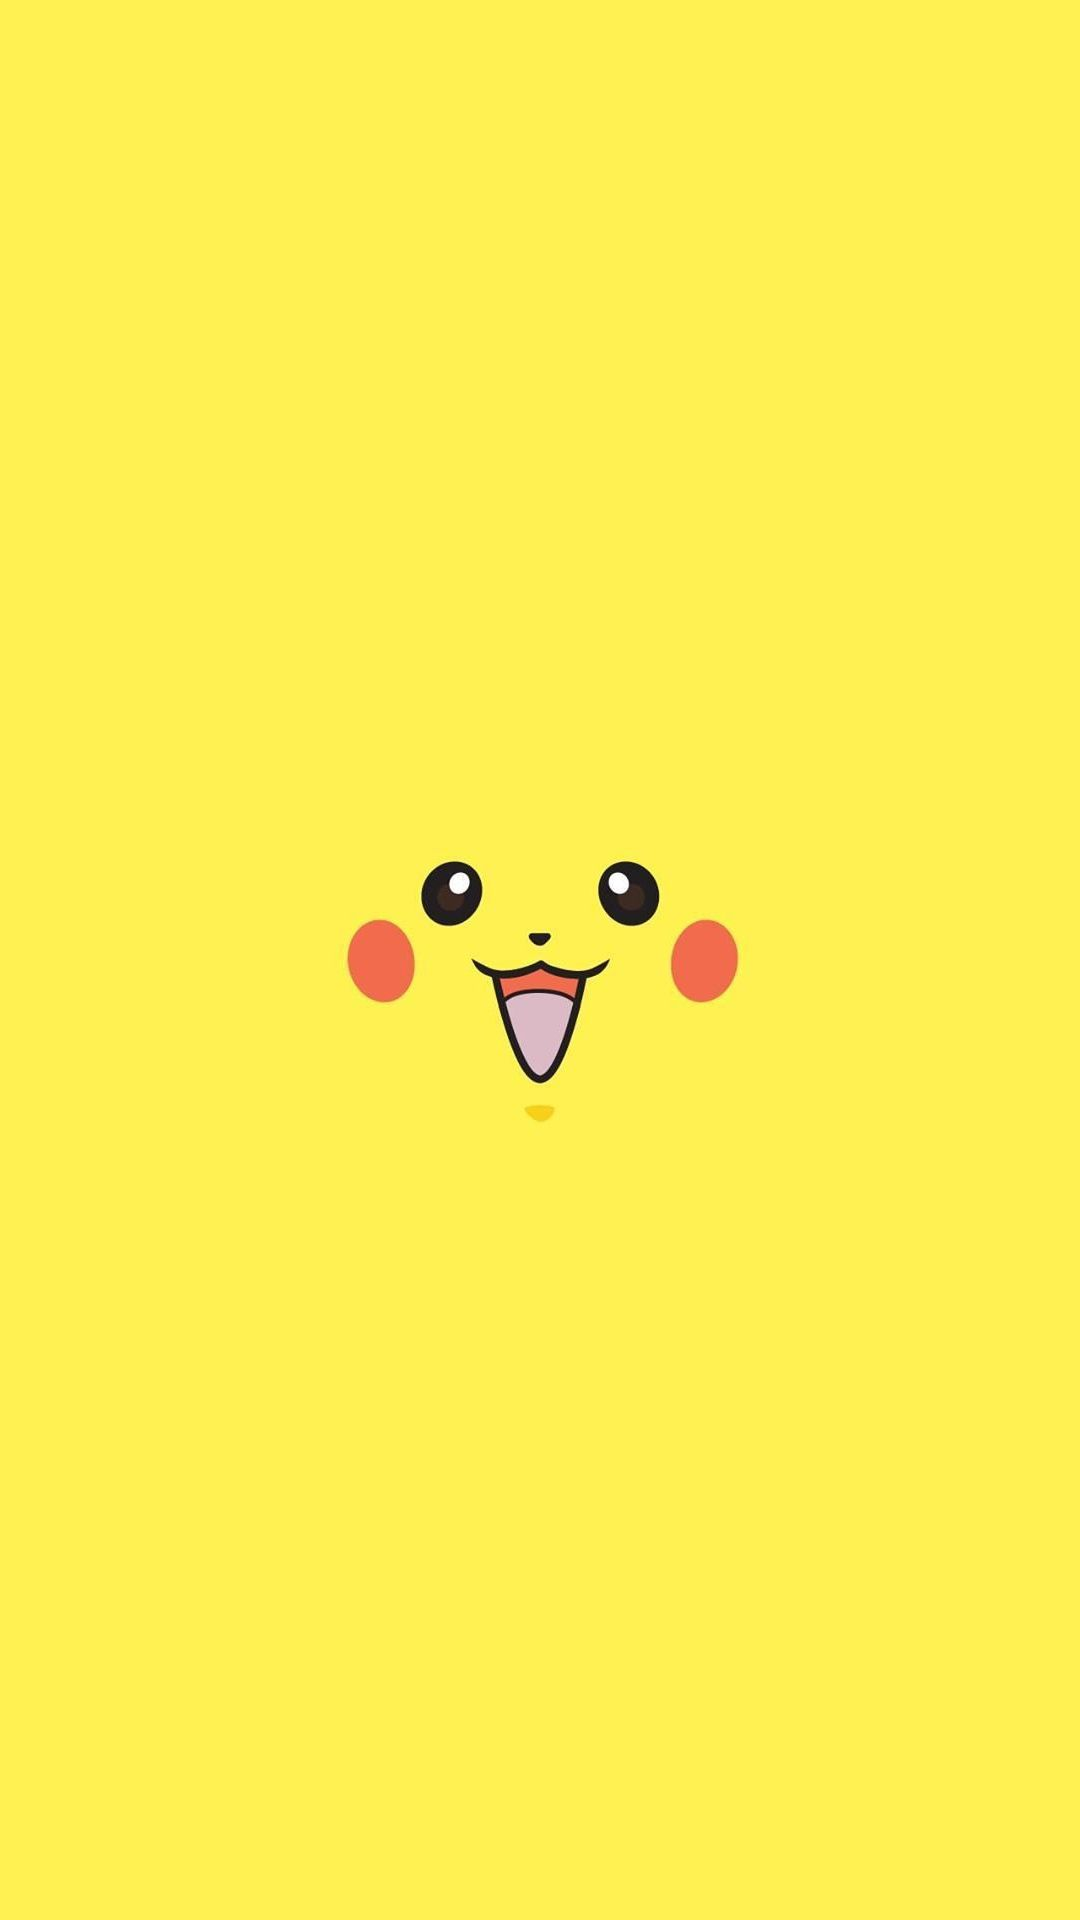 Pikachu Pokemon Minimal Flat iPhone 6 plus wallpaper